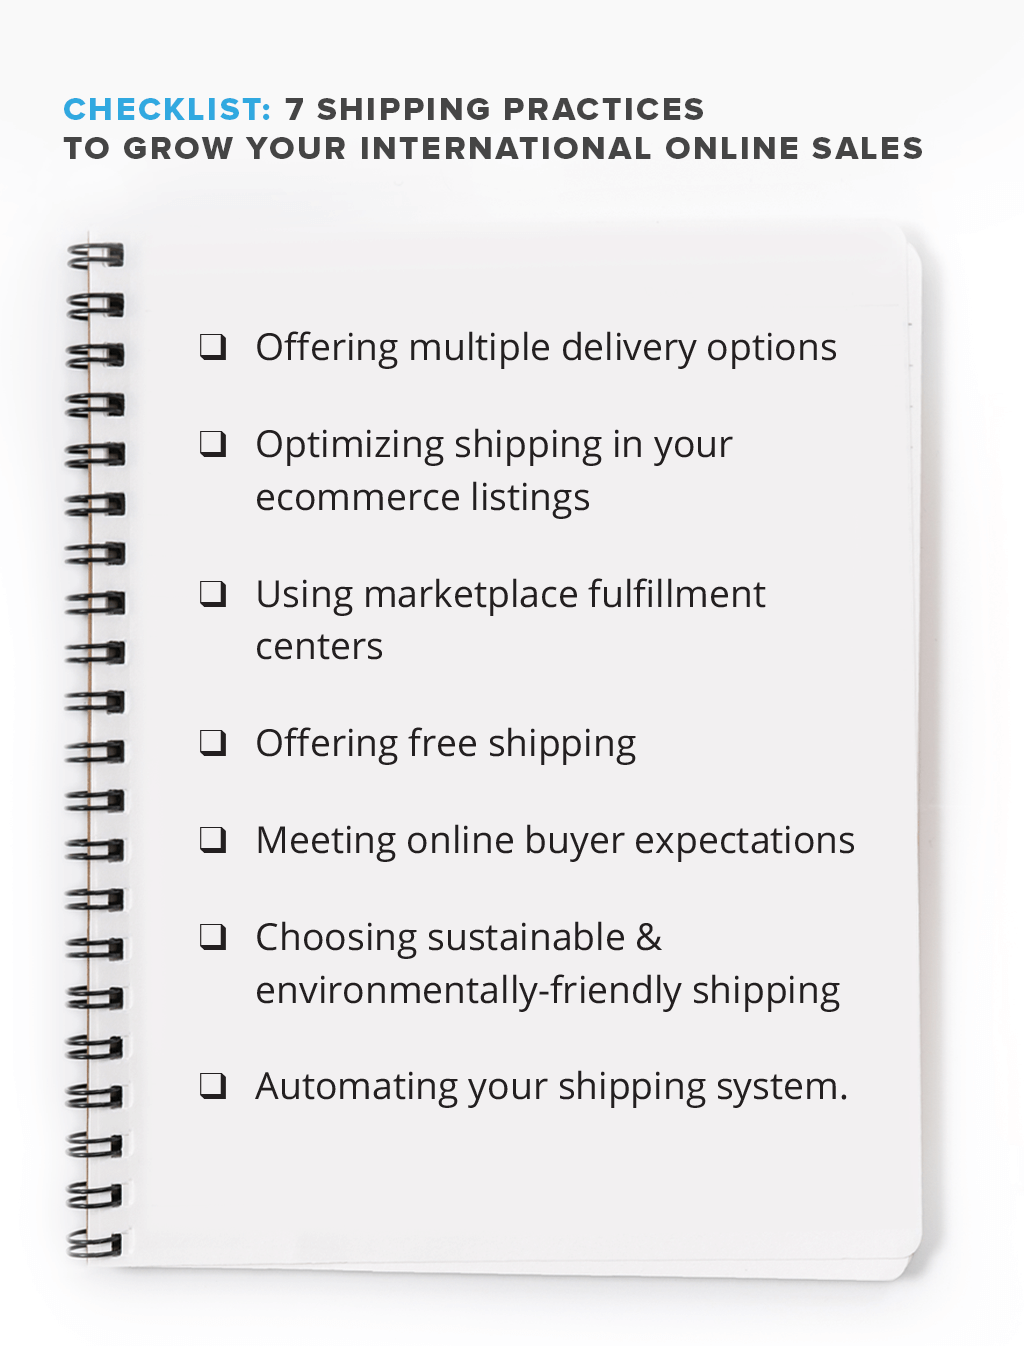 ecommerce shipping practices checklist